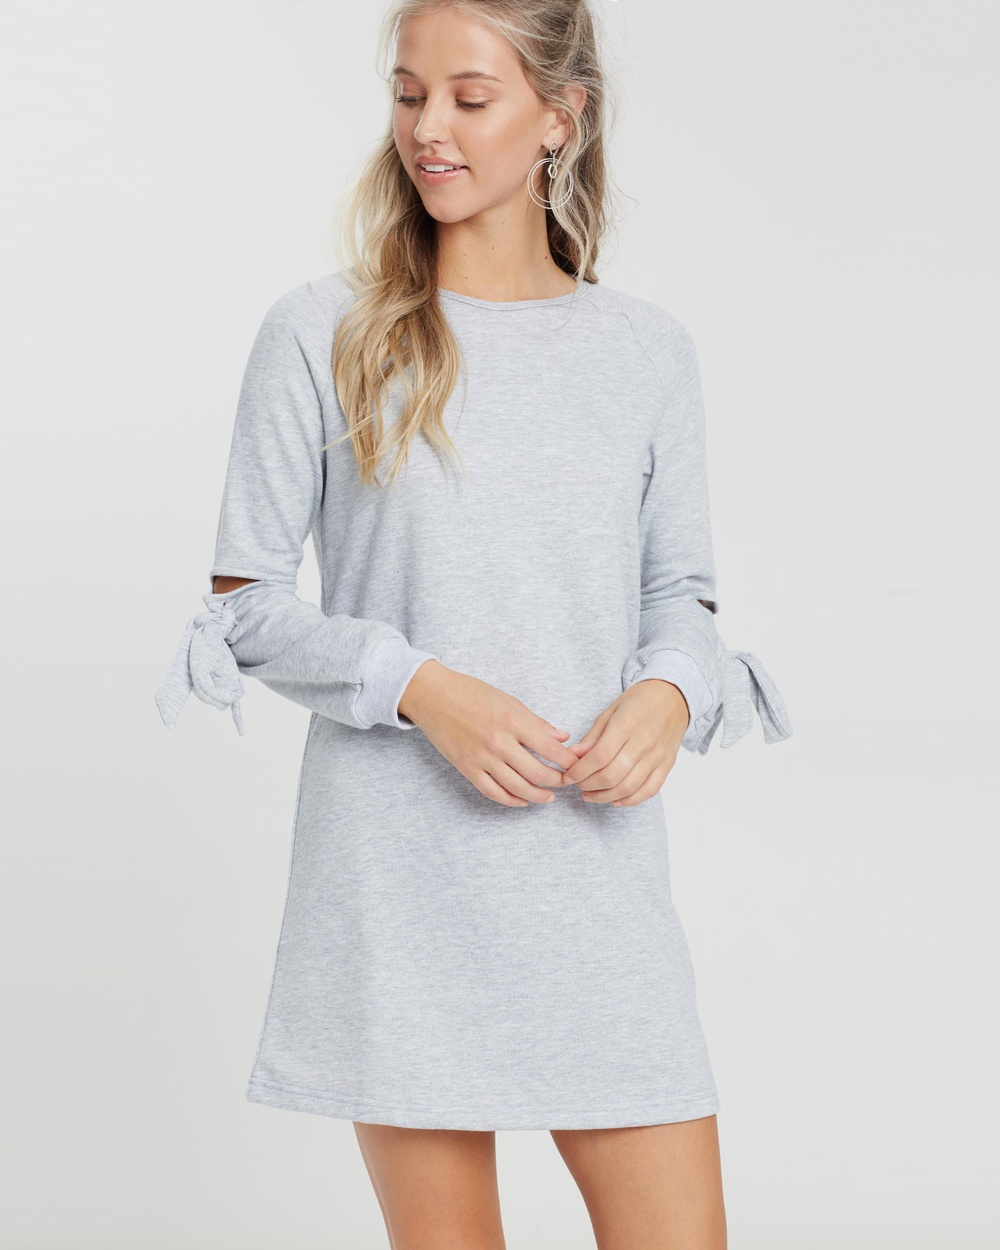 Dazie Malah Tie Side Jumper Dress Dresses Grey Marle Malah Tie Side Jumper Dress